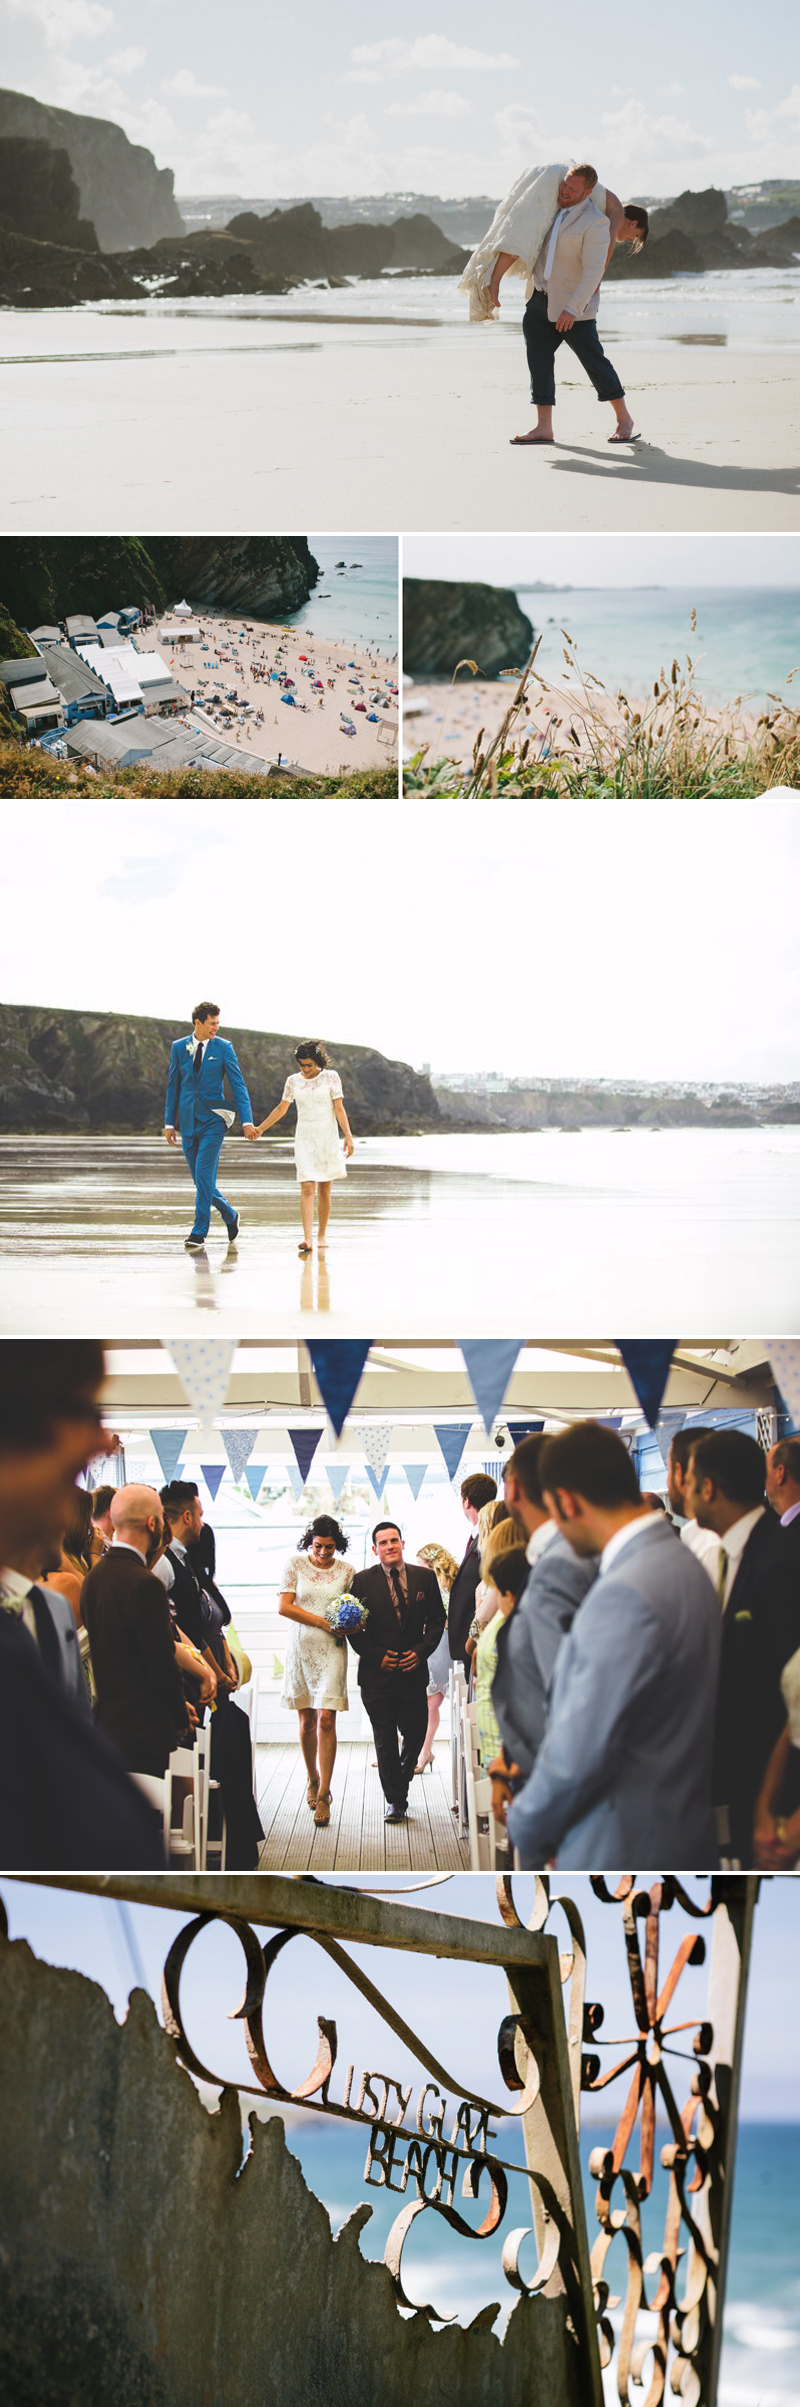 Coco Wedding Venues - Coco Collection - Lusy Glaze, Cornwall.